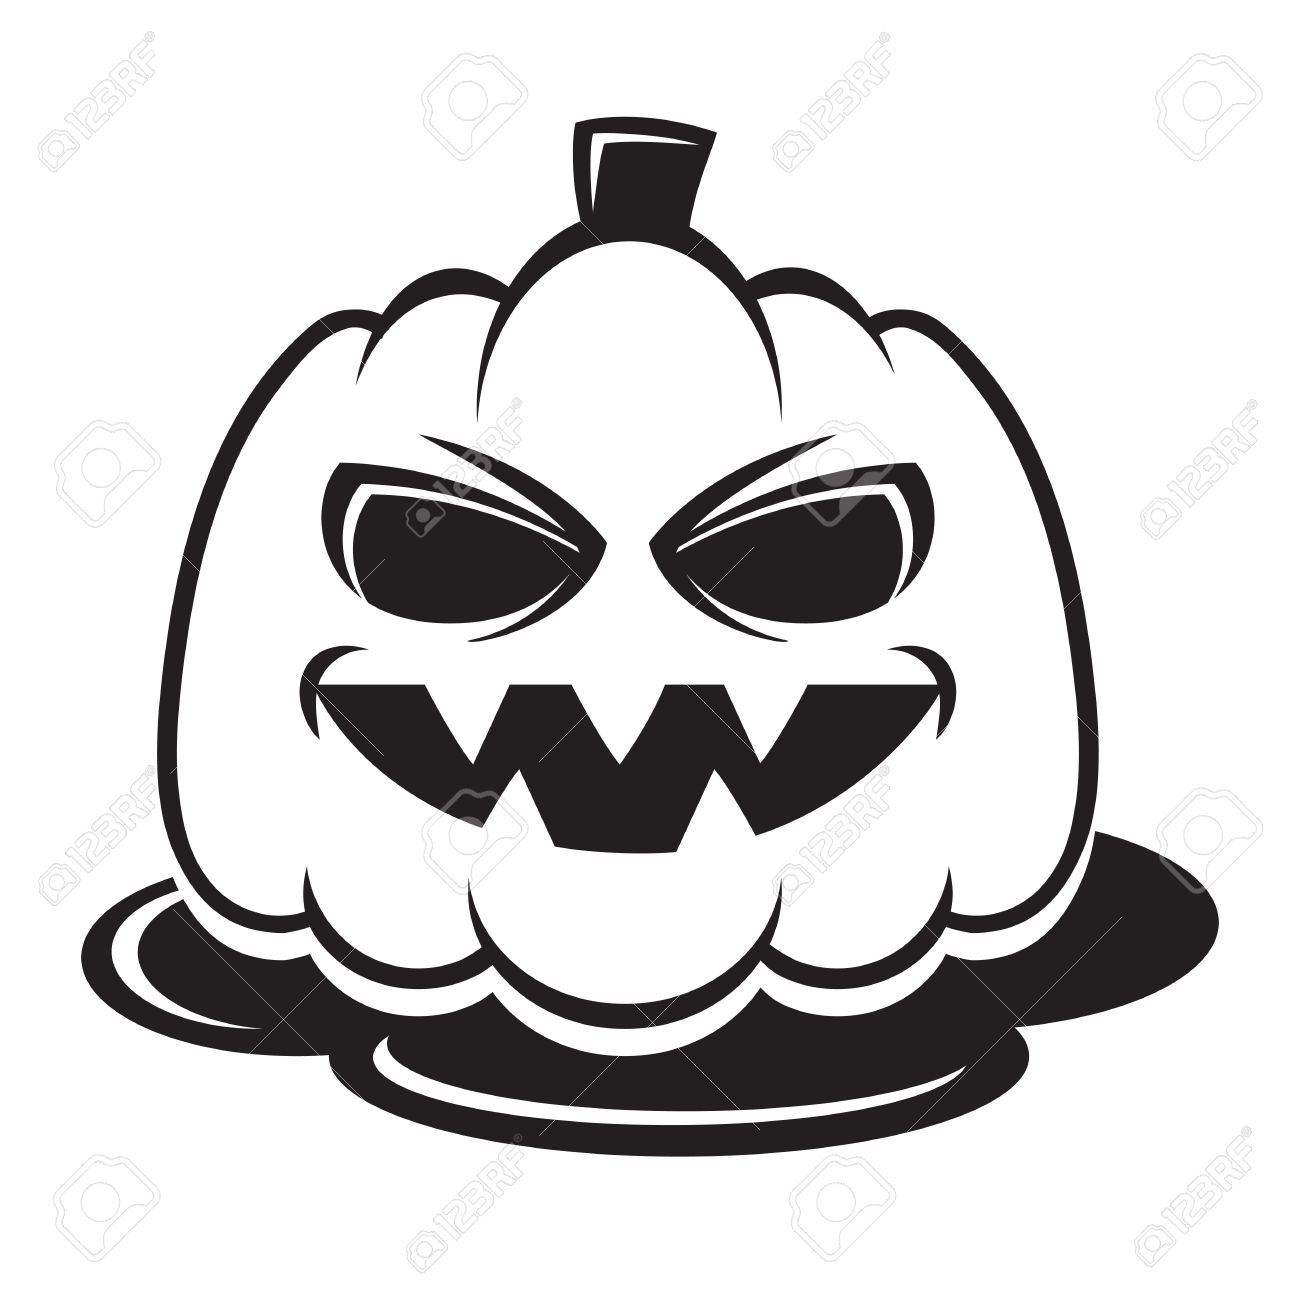 Pumpkin Clipart Royalty Free Cliparts, Vectors, And Stock.